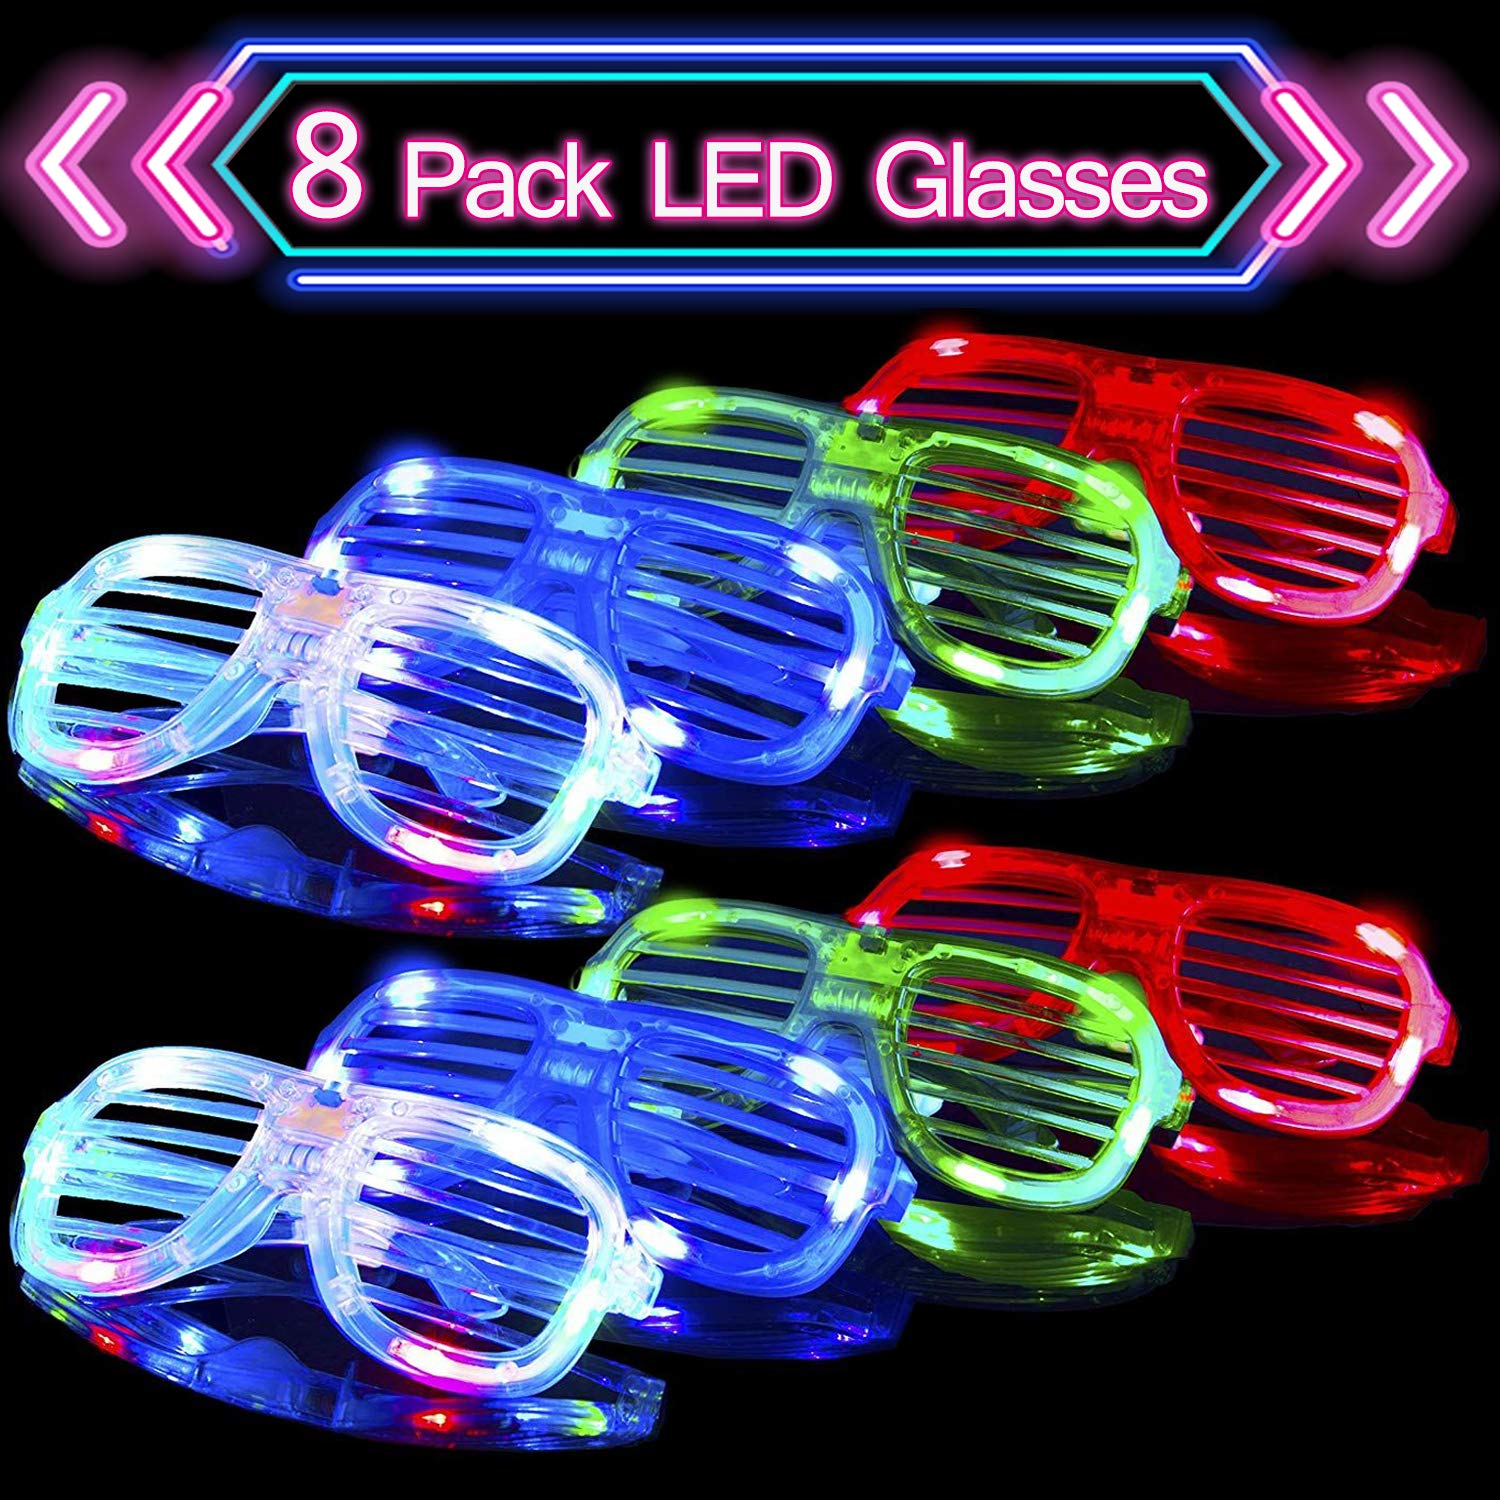 8 Pack Light Up Glasses Birthday Party Favors for Kids Adults Birthday Party Supplies Glow in the Dark Party Packs LED Glasses Flashing LED Party Glasses Holiday Dress Up Accessories LANDYLO